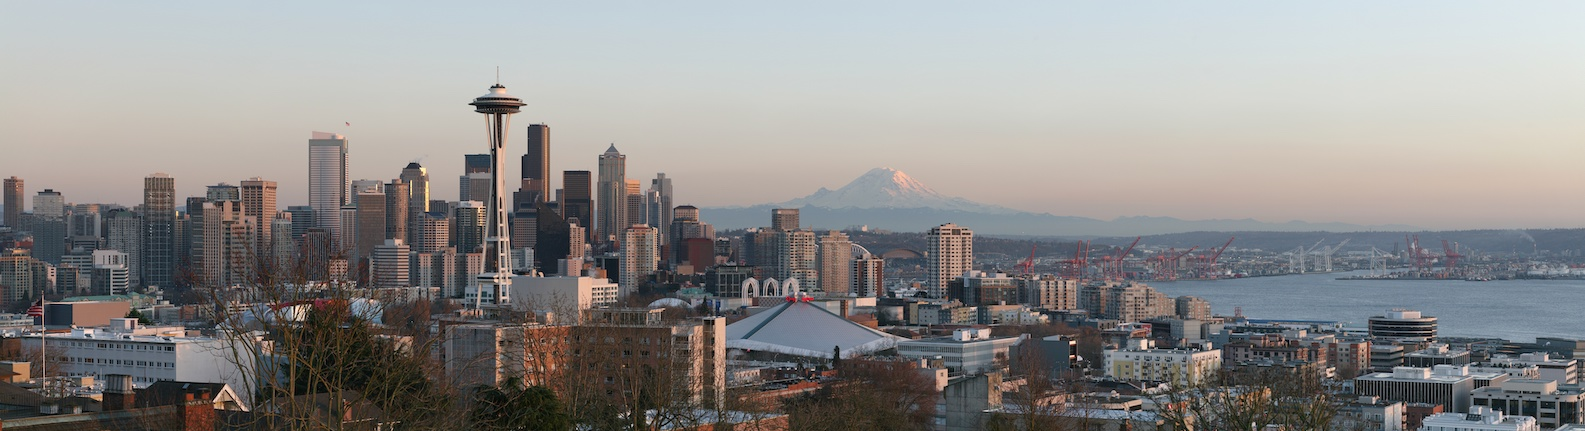 Photo of cityscape with volcano in the background